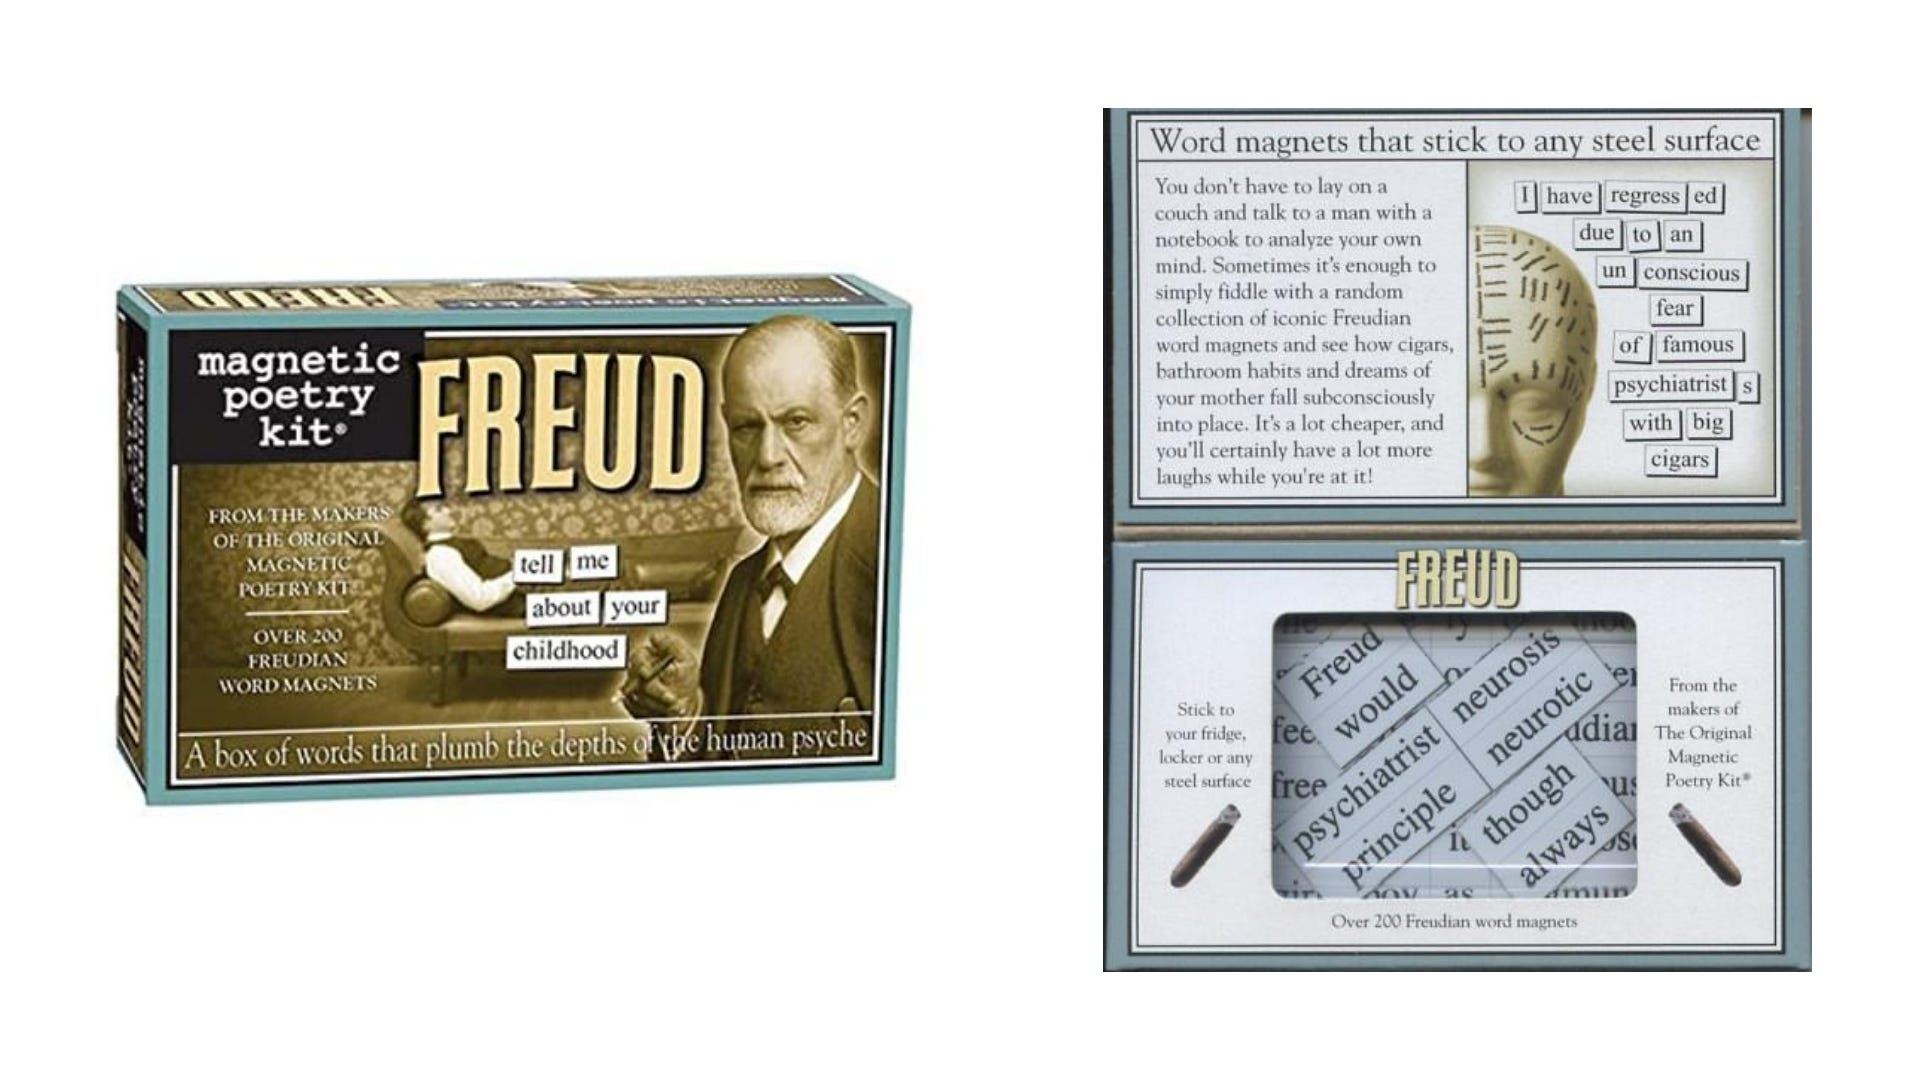 A front and inside view of the Freud Magnetic Poetry kit